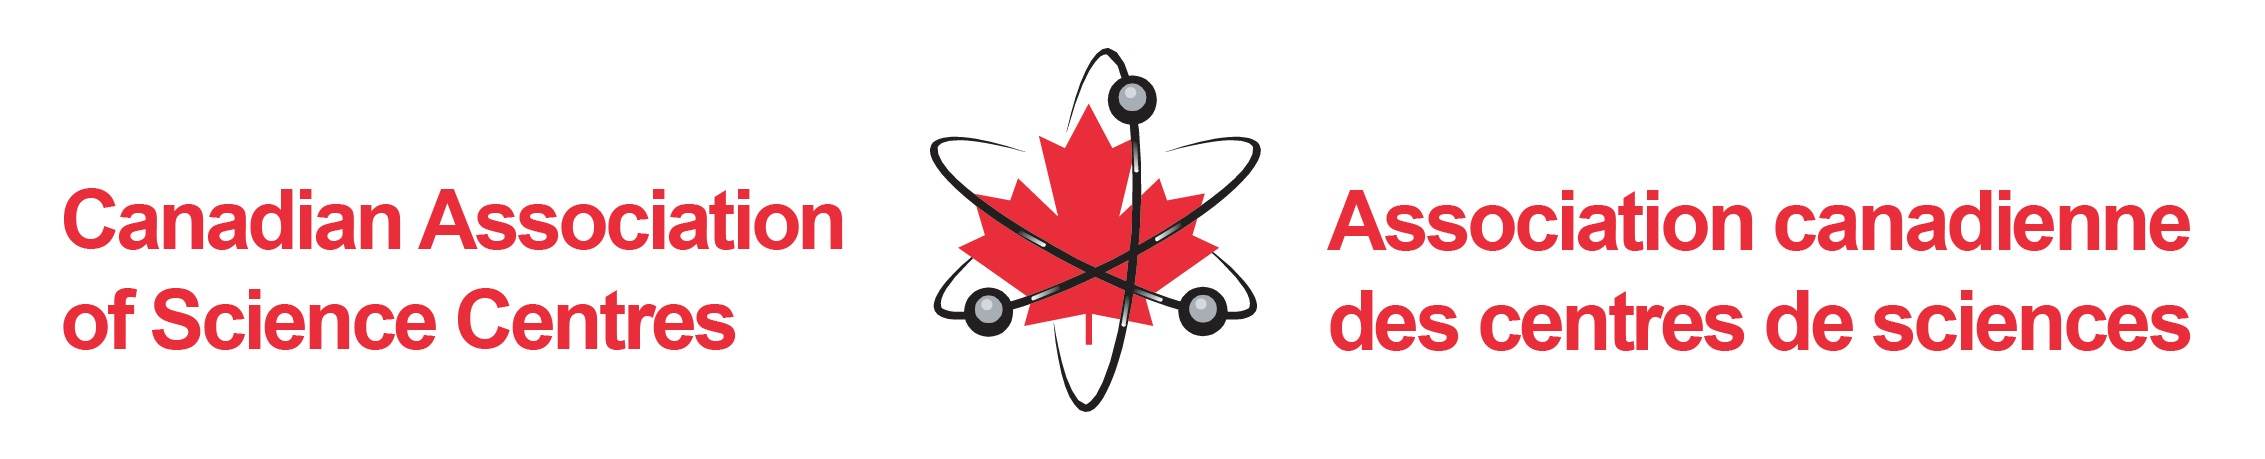 canadian association of science centres l association canadienne